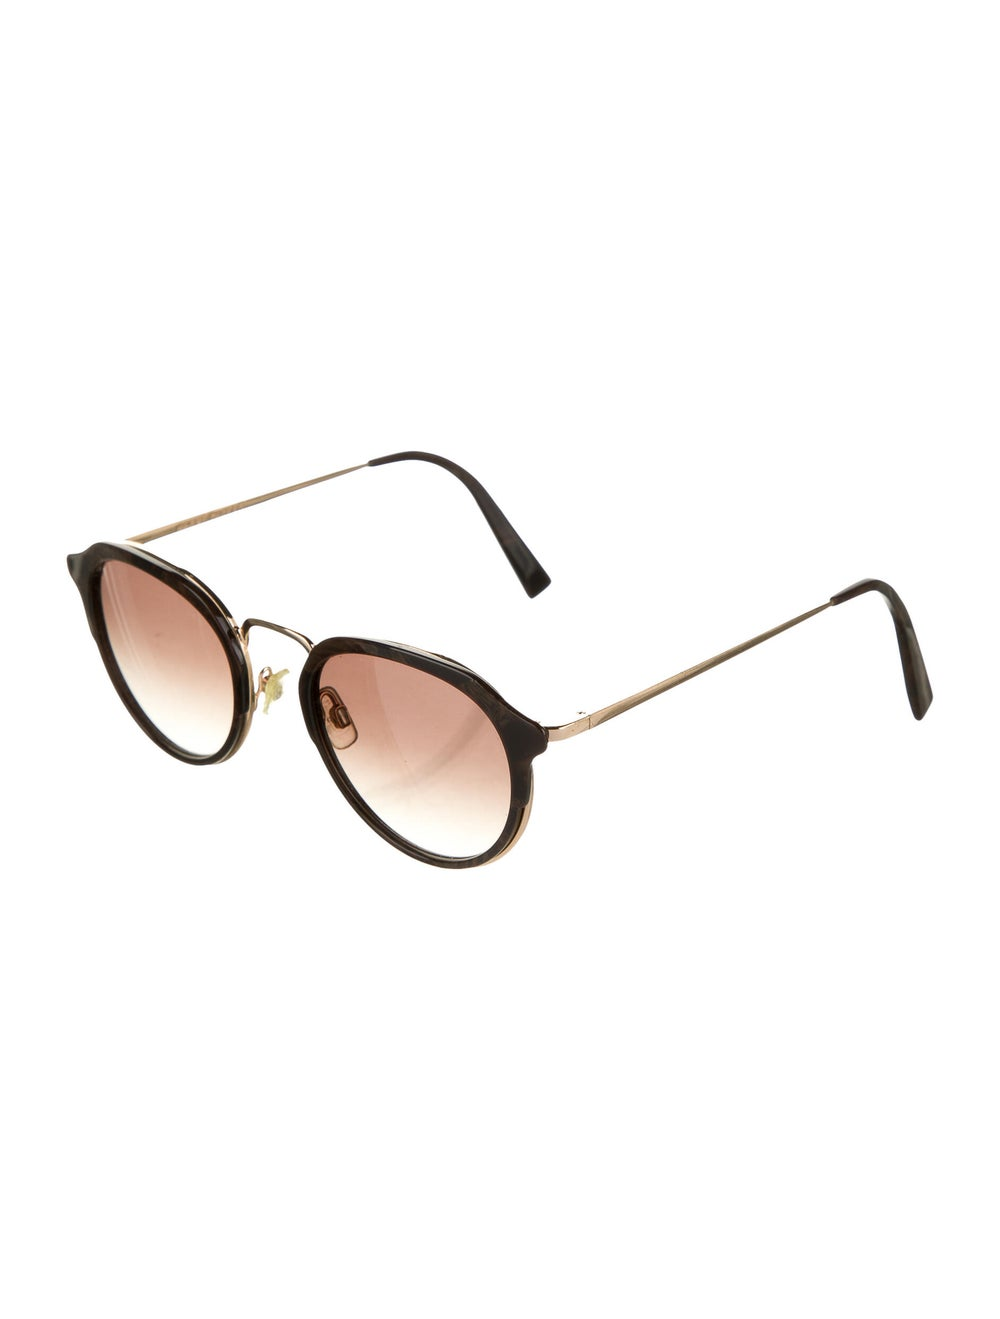 Warby Parker Tinted Round Sunglasses Gold - image 2